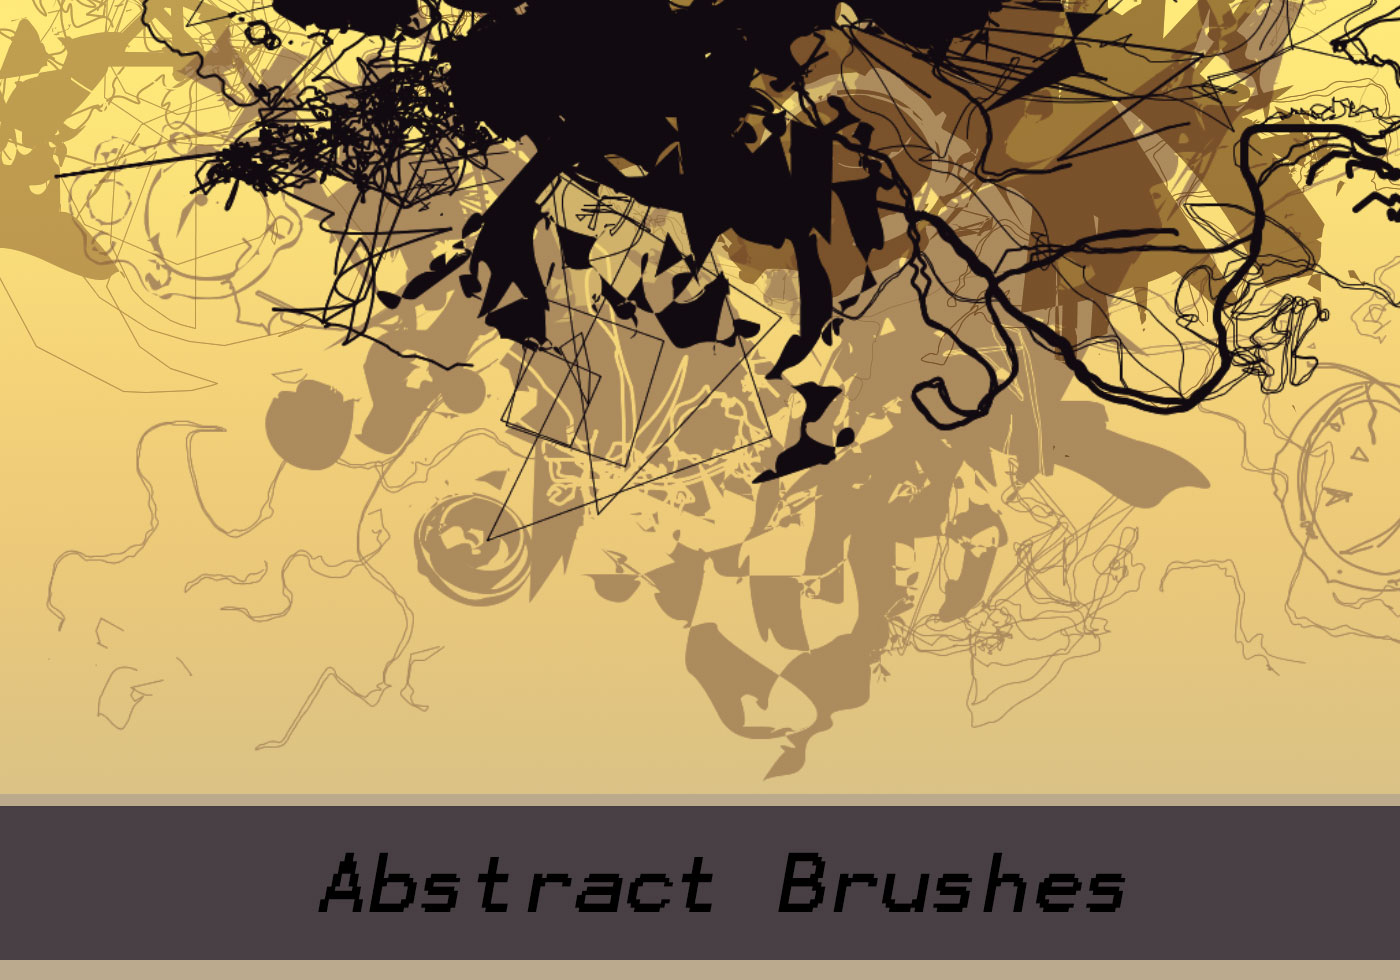 Abstract-brushes